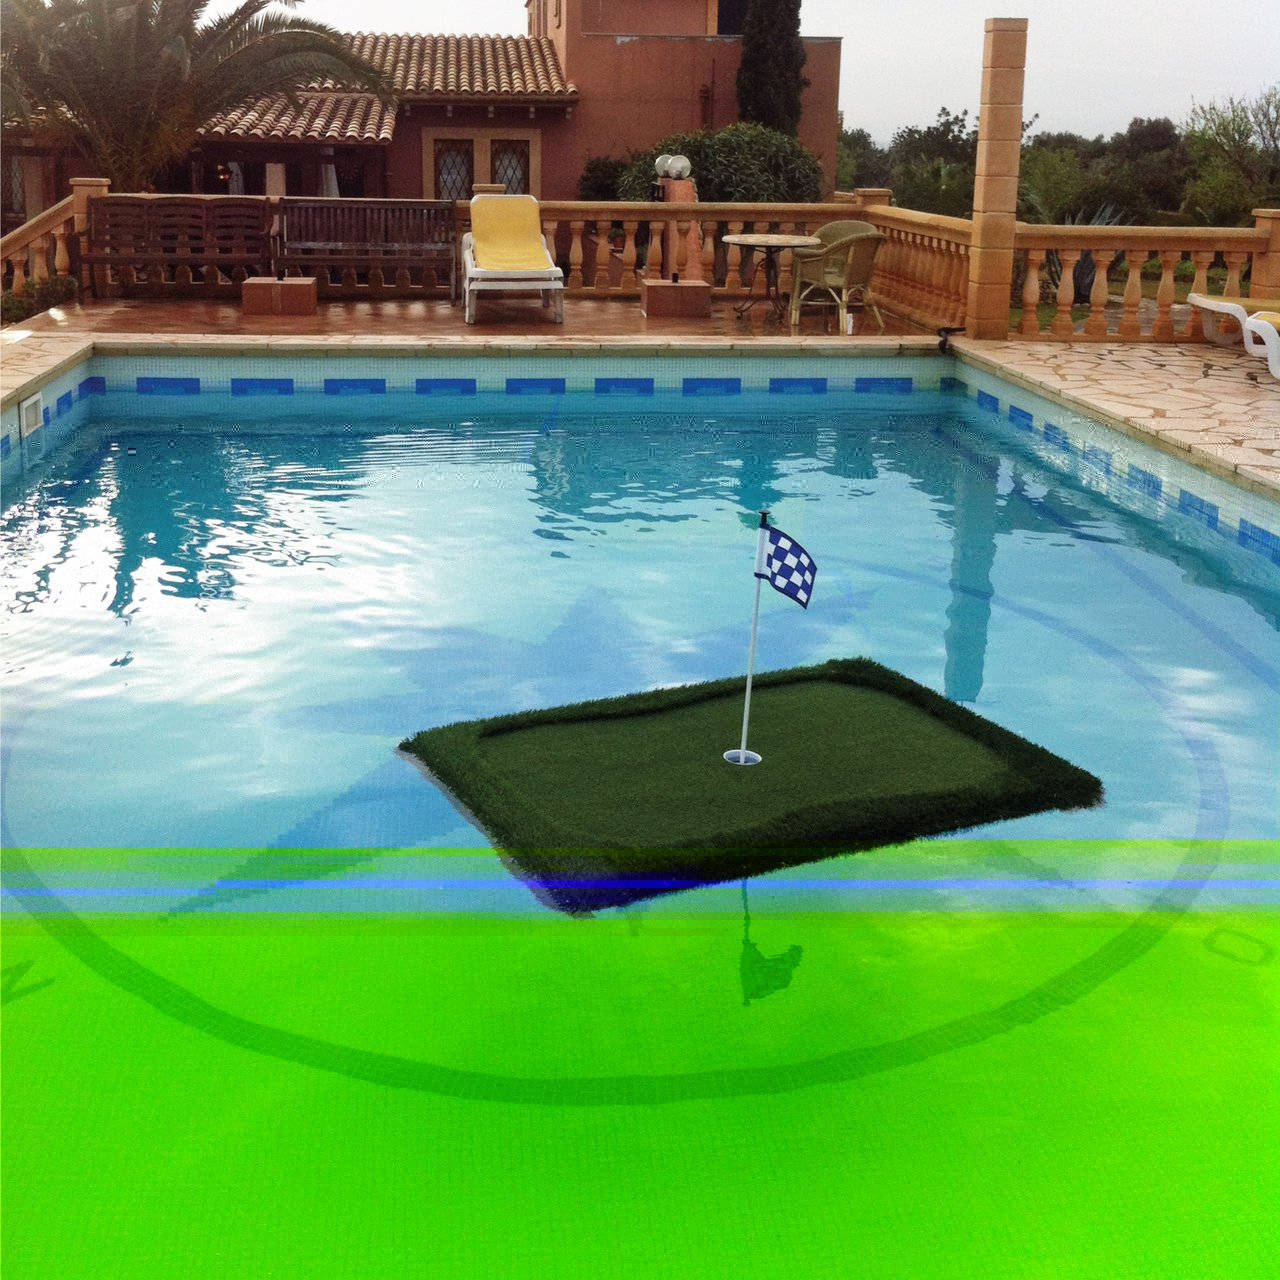 Floating golf greens awesome stuff to buy for Swimming pool accessories